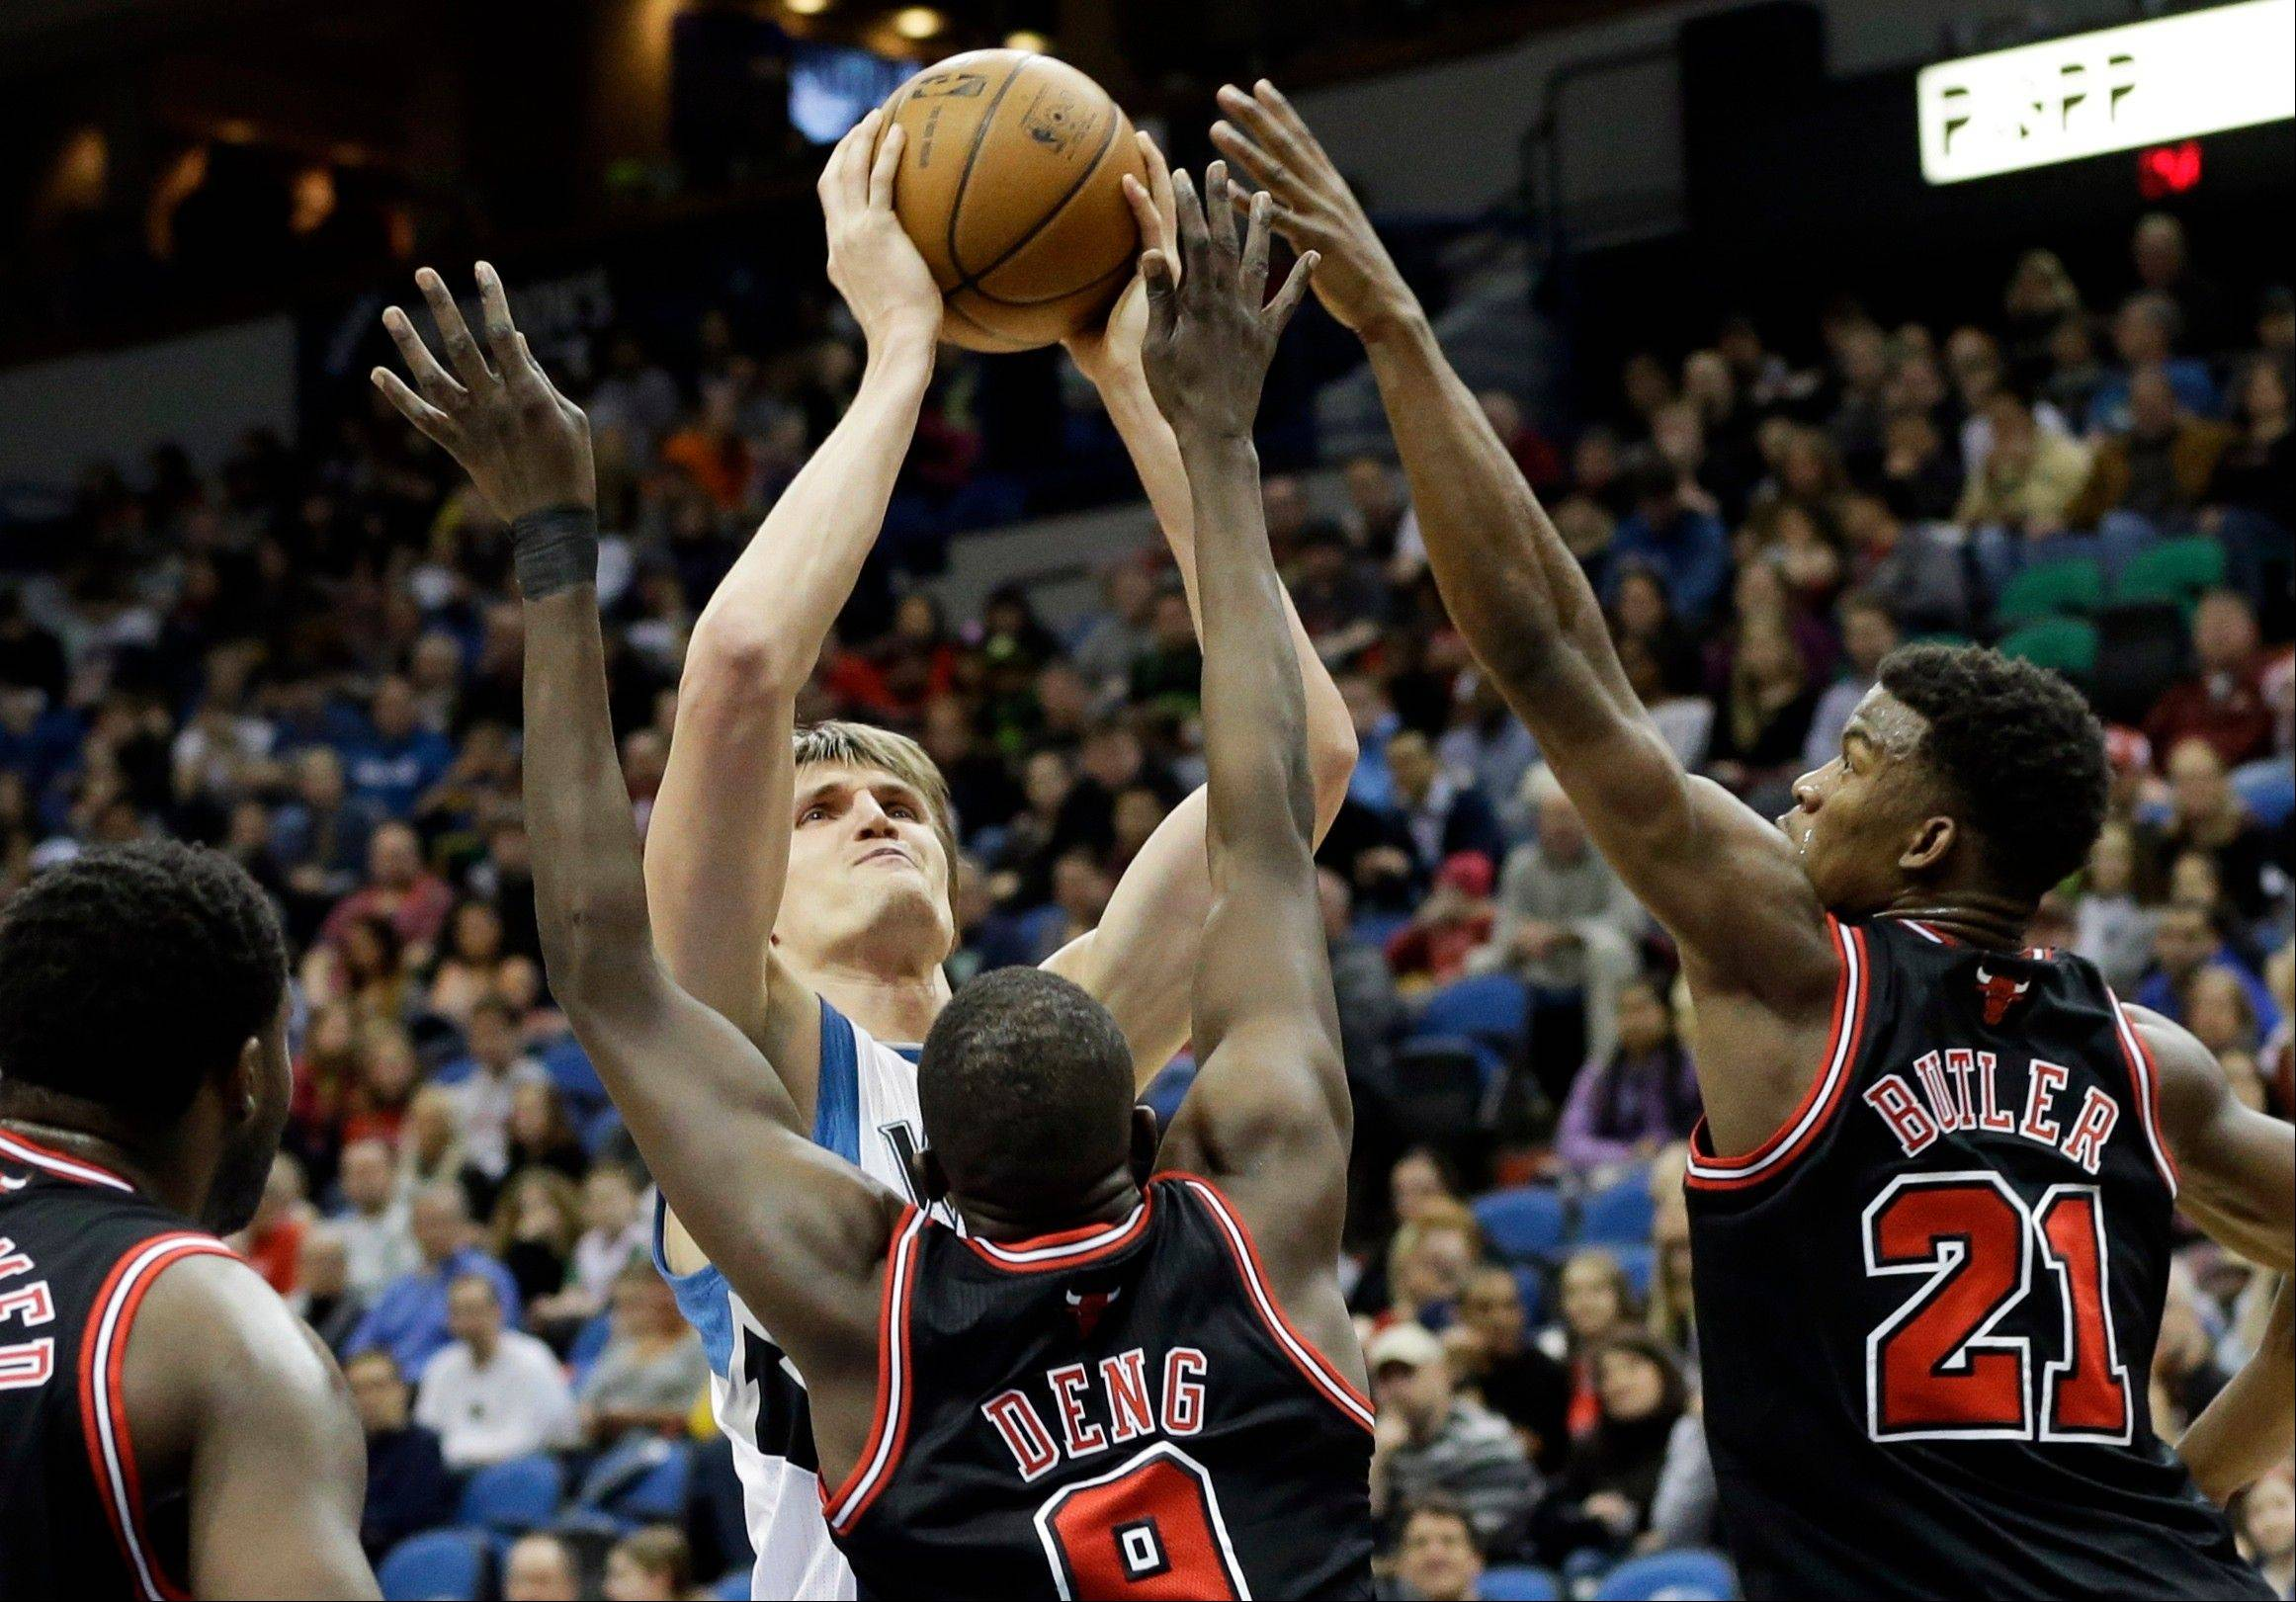 Minnesota's Andrei Kirilenko shoots as Luol Deng (9) and Jimmy Butler (21) defend during their game on March 24. The Bulls are 3-0 this season when when Deng and Butler both start.